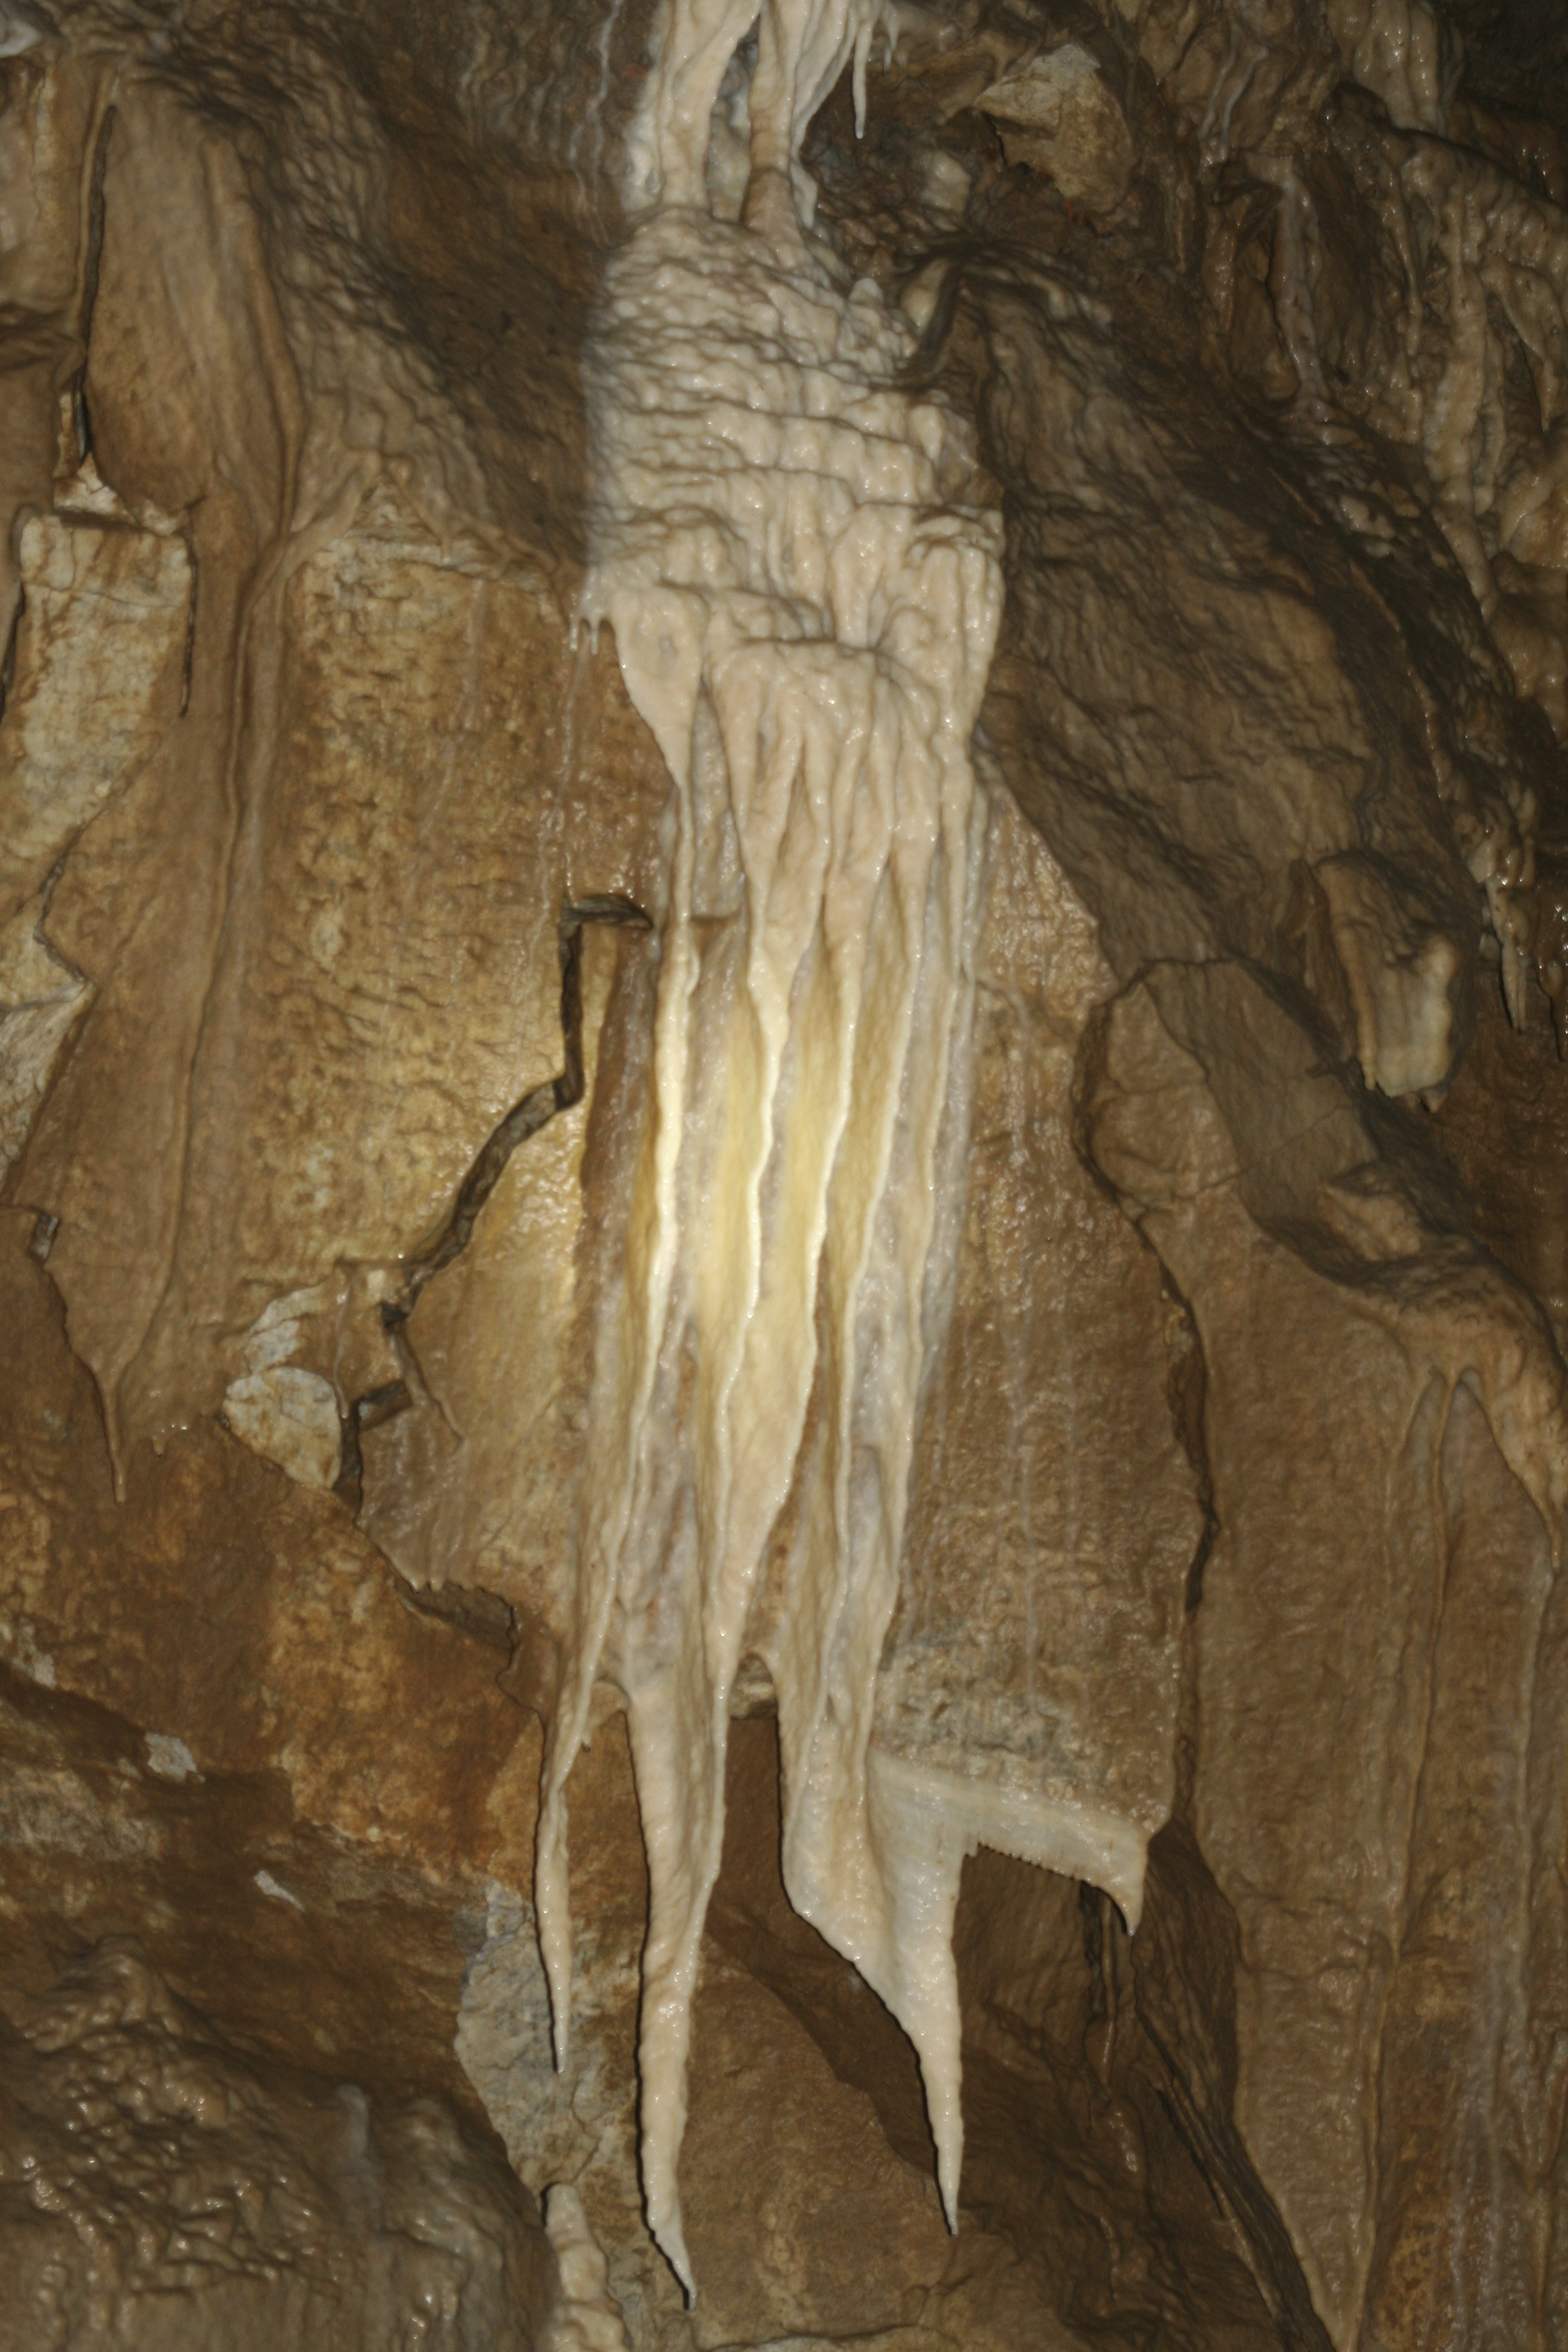 Ghostly rock waterfall at Oregon Caves National Monument.